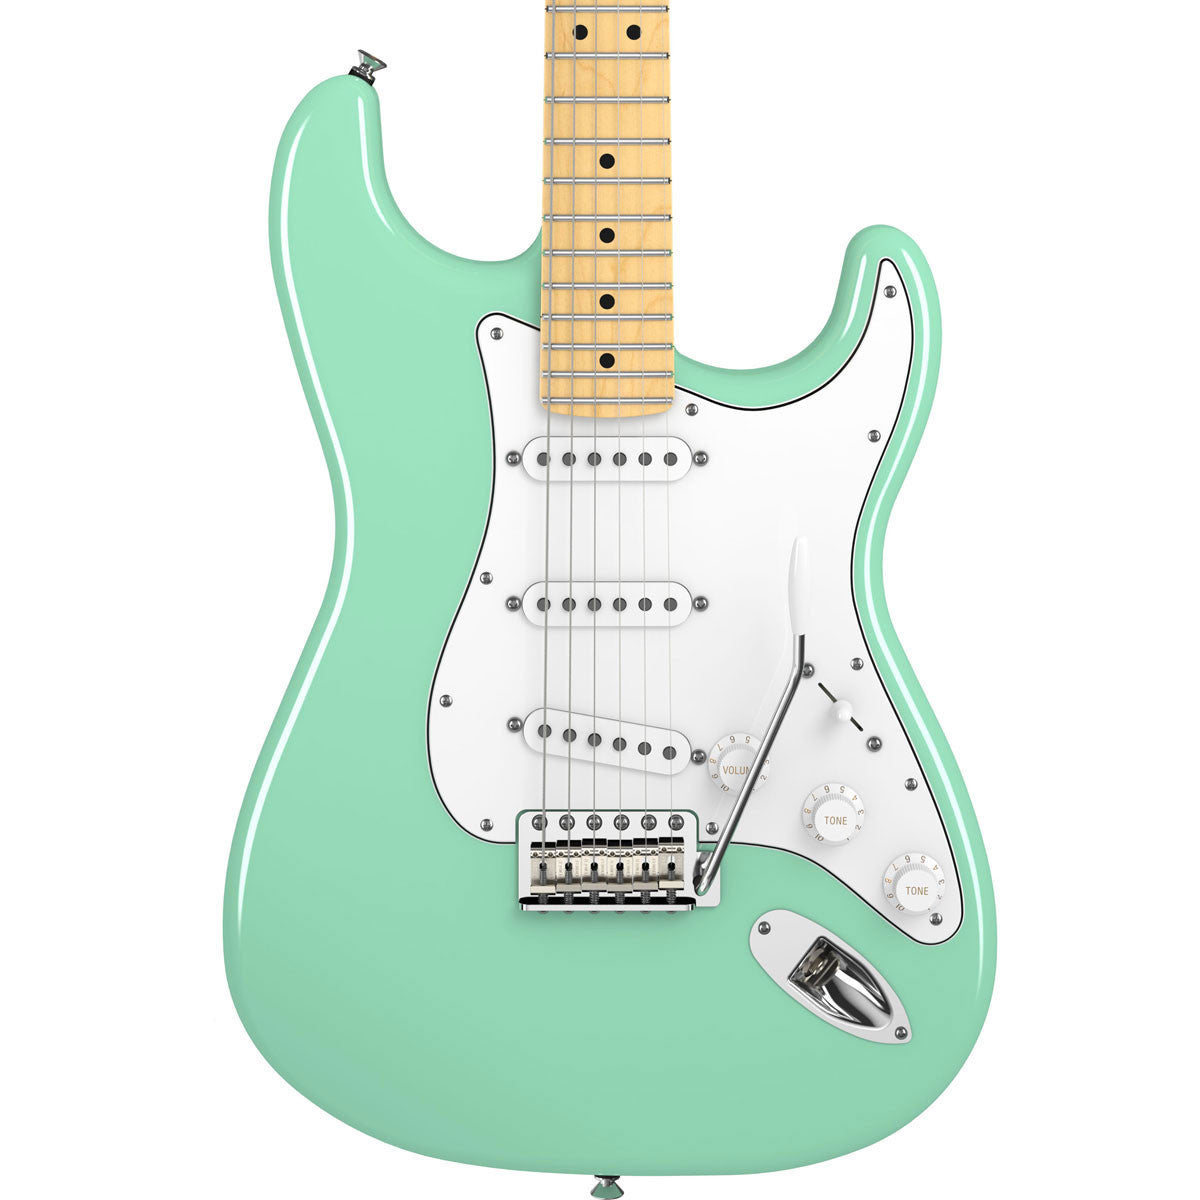 Fender American Special Stratocaster - Maple - Surf Green - Vintage Guitar Boutique - 1